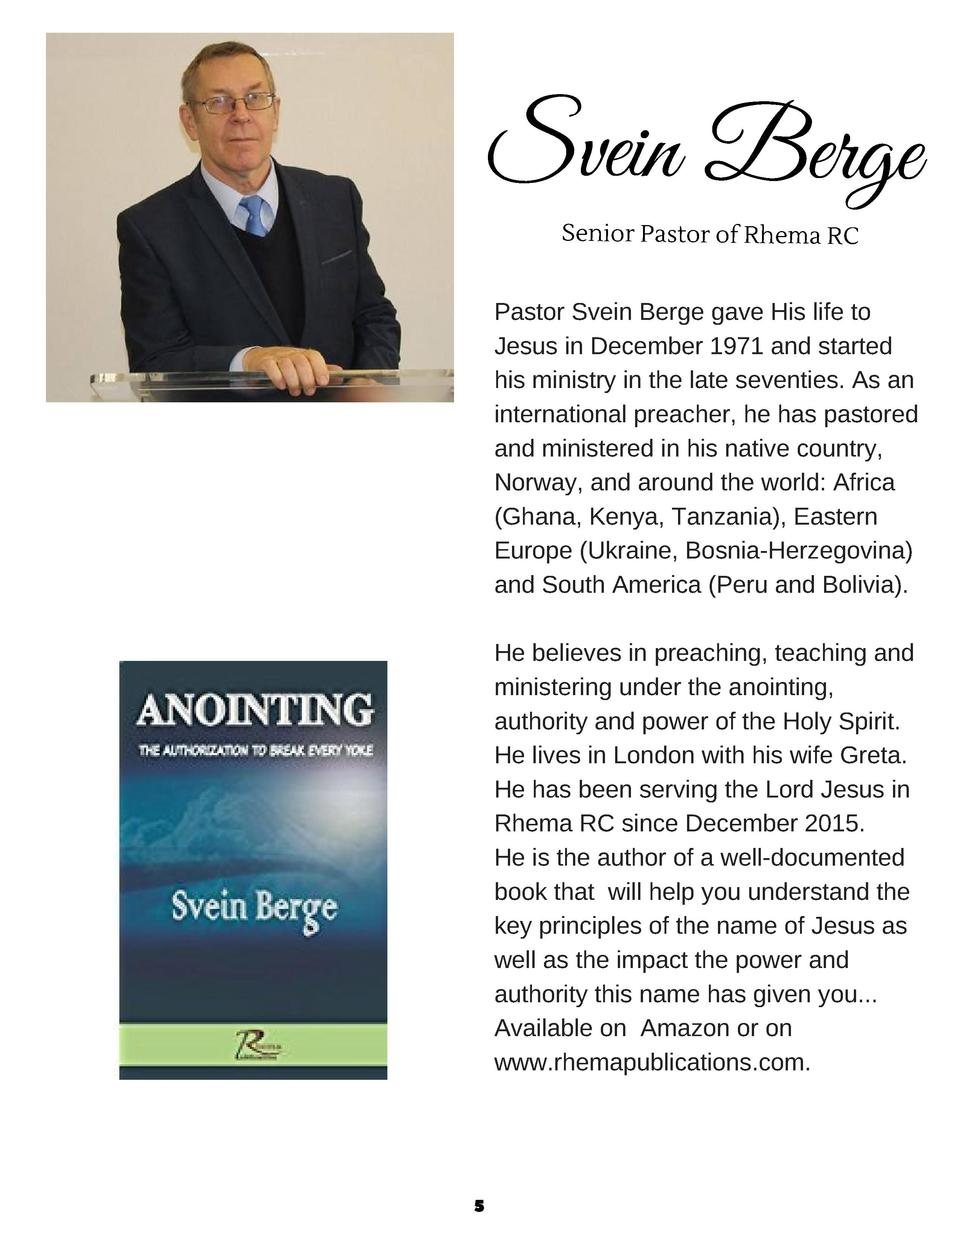 Svein Berge Senior Pastor of Rhema RC  Pastor Svein Berge gave His life to Jesus in December 1971 and started his ministry...